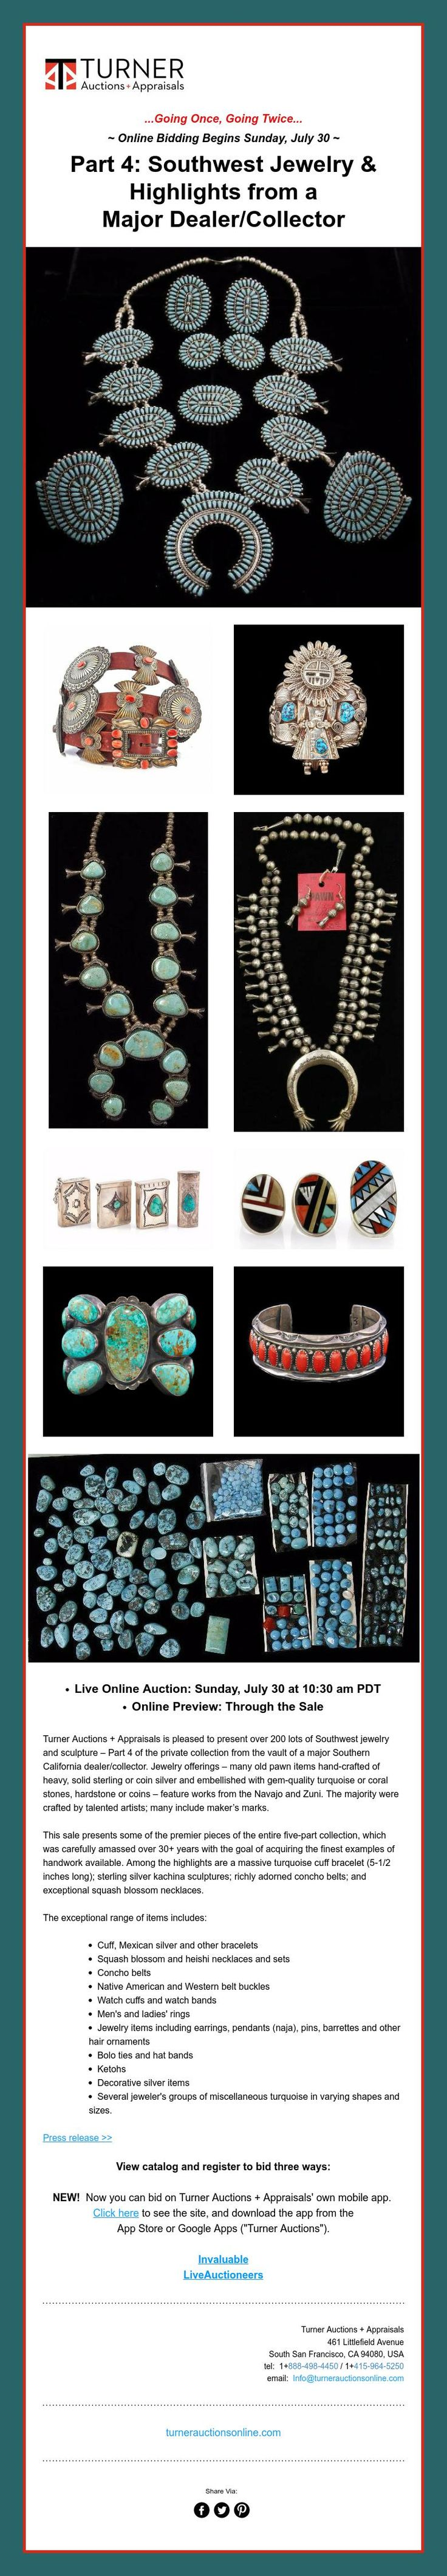 This Sunday, July 30 ~ Part 4: Southwest Jewelry & Highlights from a Major Dealer/Collector